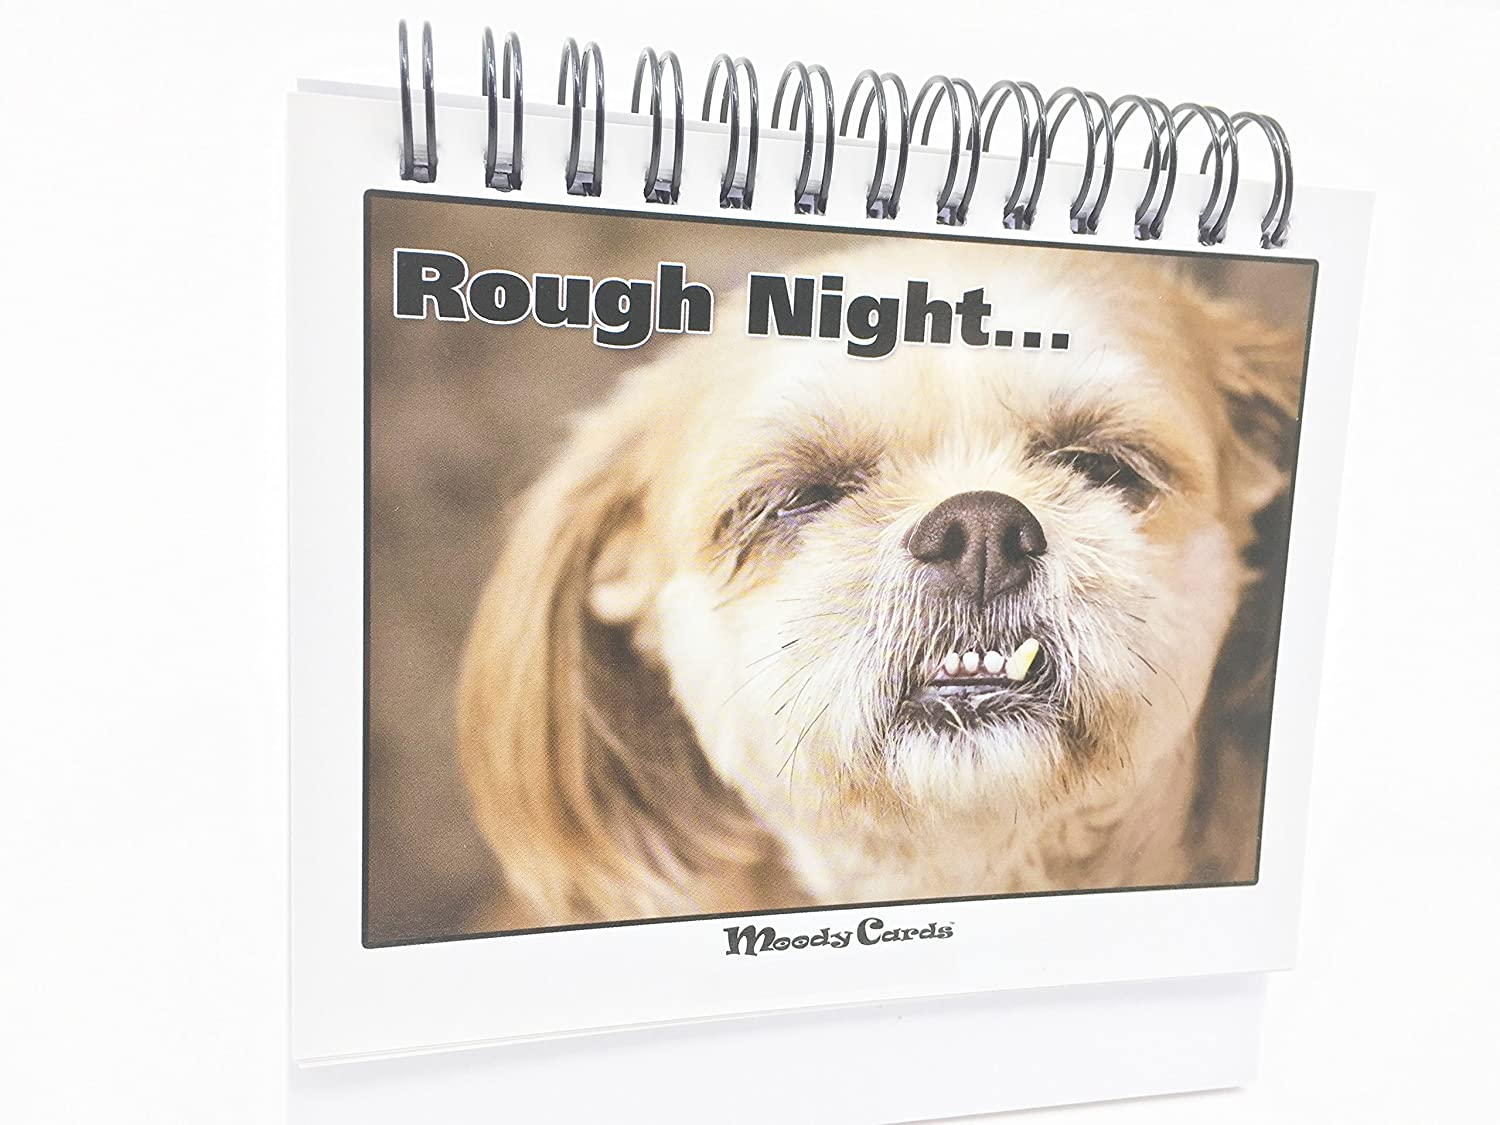 Amazon.com : Funny Office Gifts - Doggy Moodycards! Great Cubicle ...